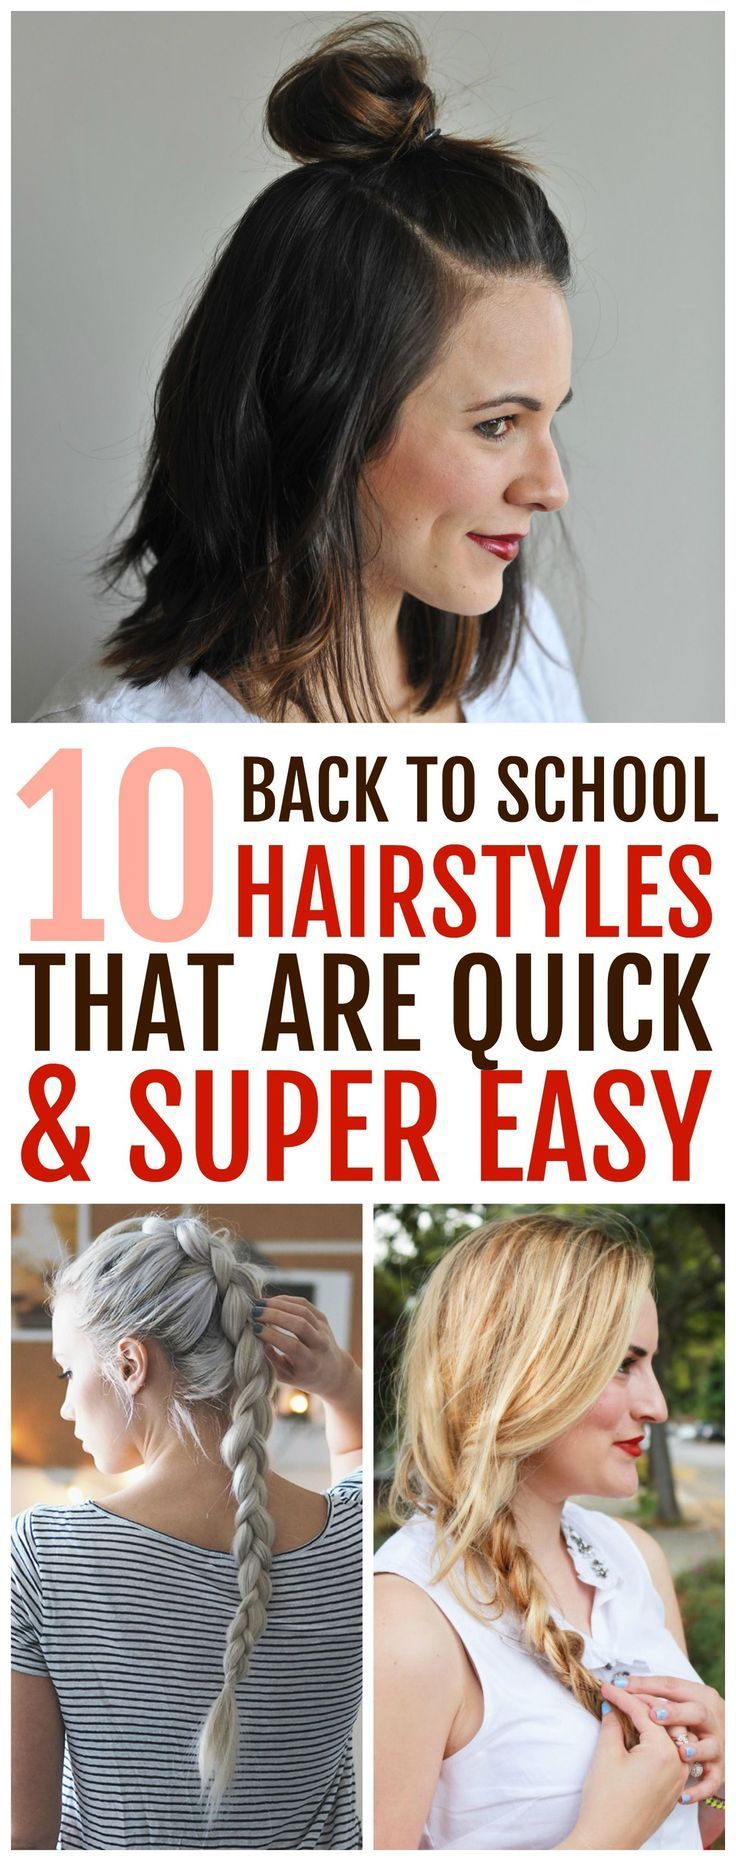 10 Quick And Easy Back To School Hairstyles For High School Teens And College Students You Ll Fin Back To School Hairstyles High School Hairstyles Hair Styles